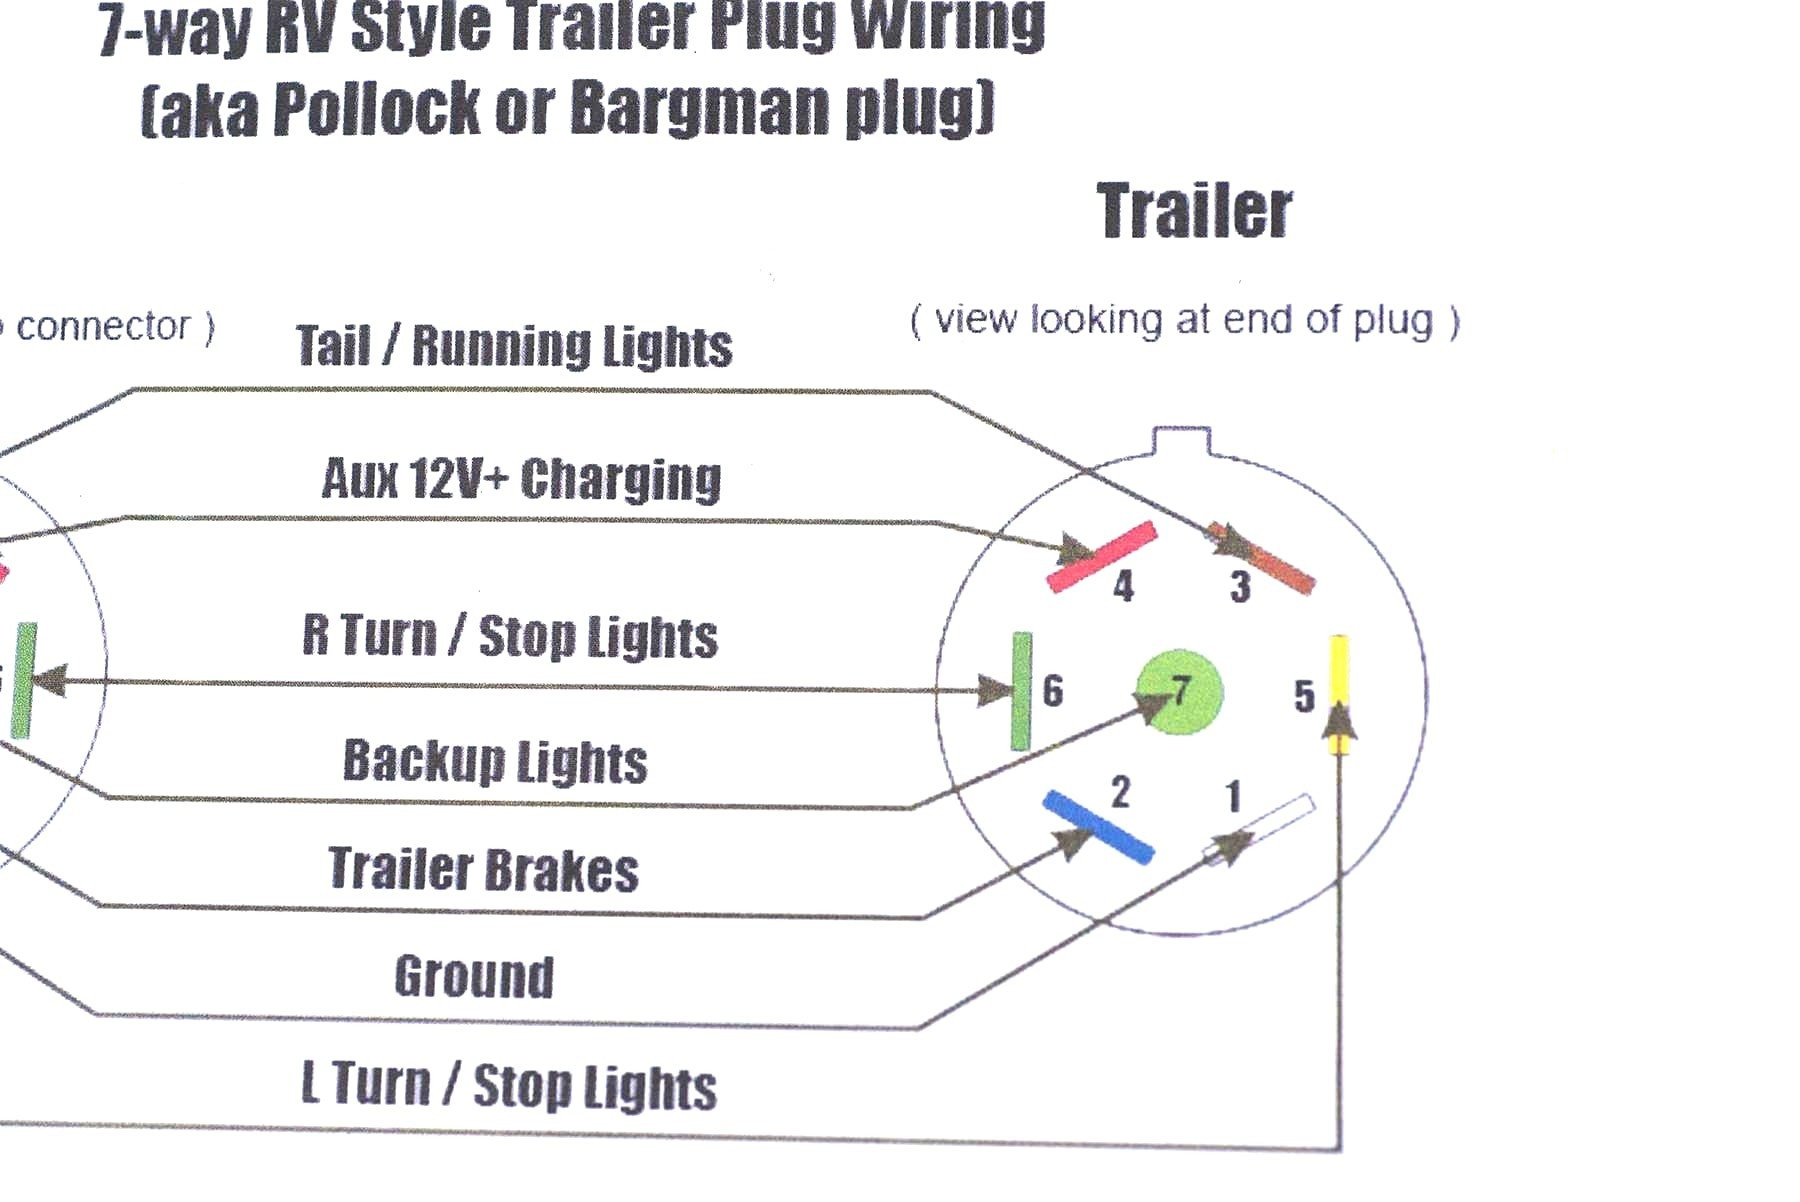 Wiring Diagram For Ifor Williams Trailer Free Download | Wiring Diagram - Ifor Williams Trailer Wiring Diagram